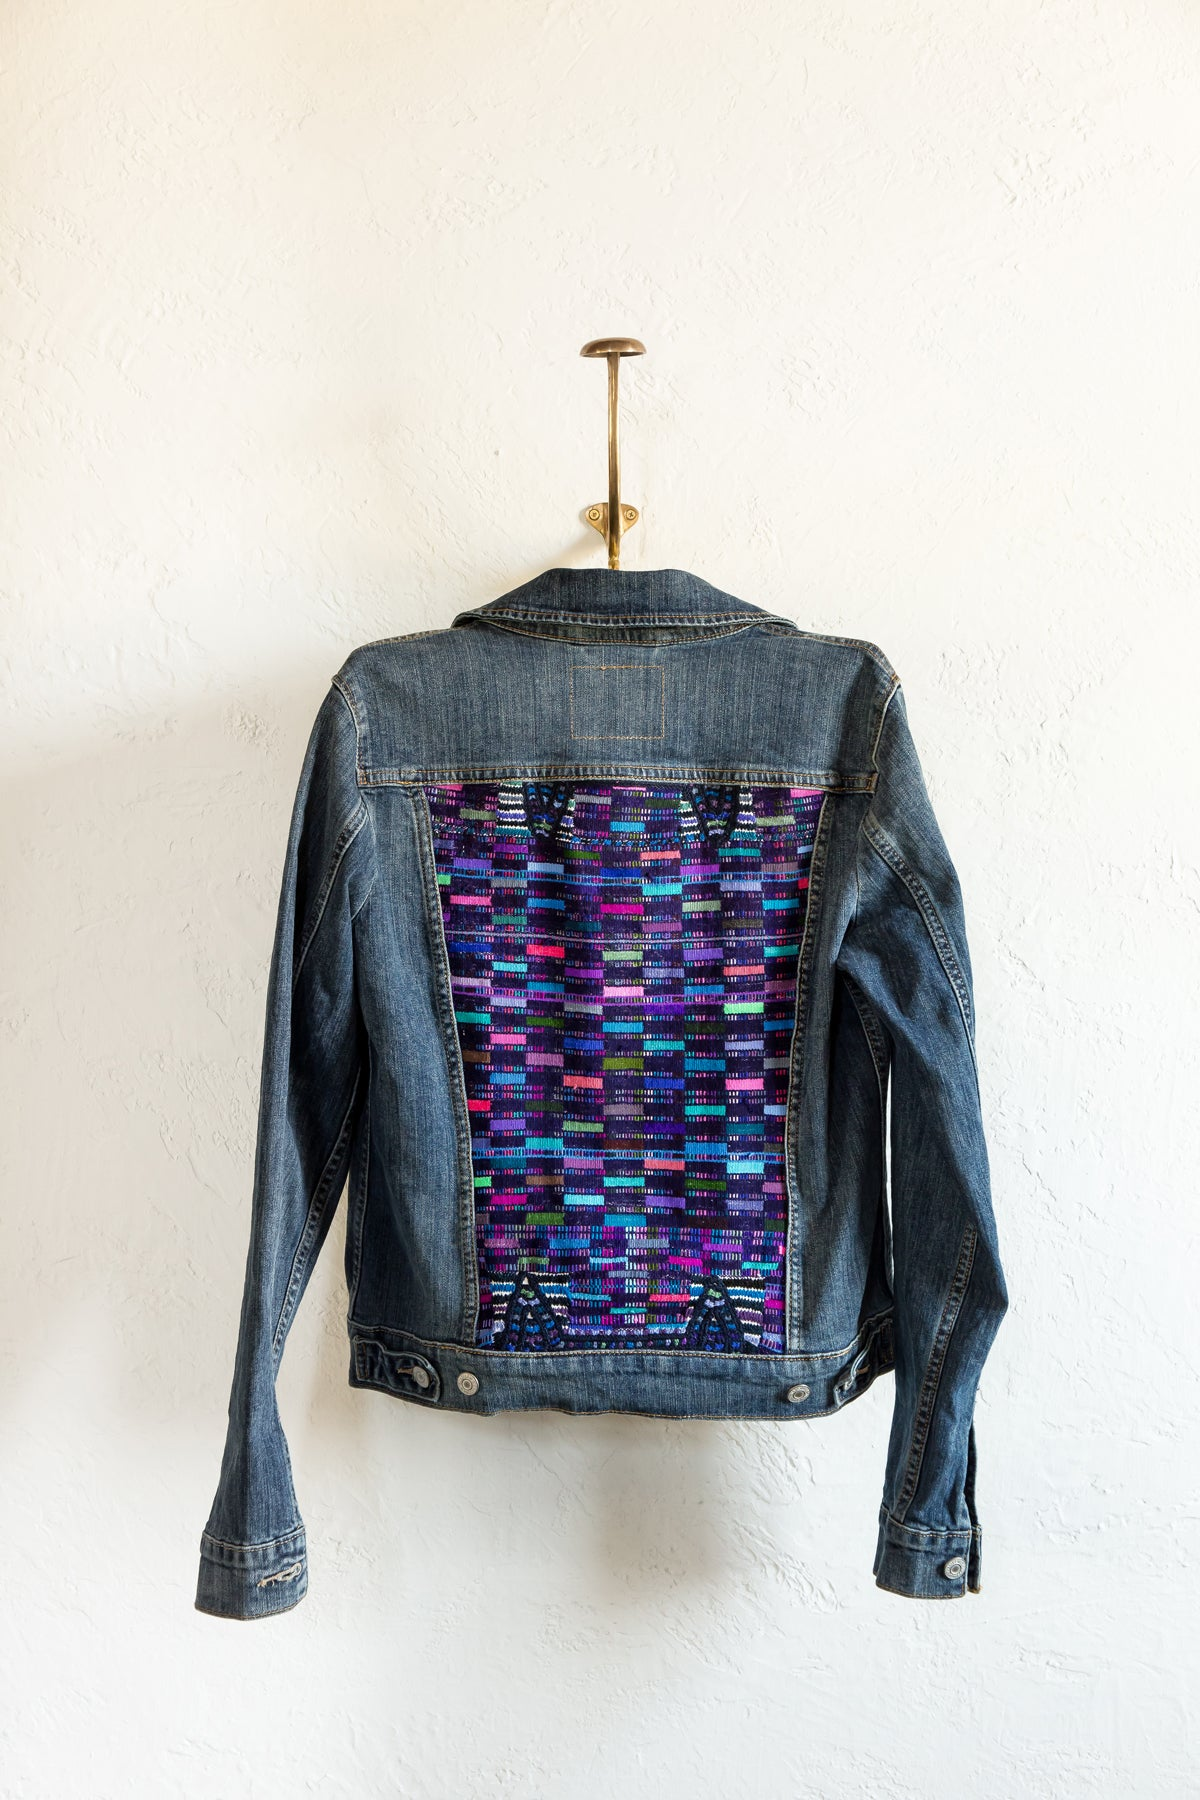 Cancuc Mora Jean Jacket - Medium